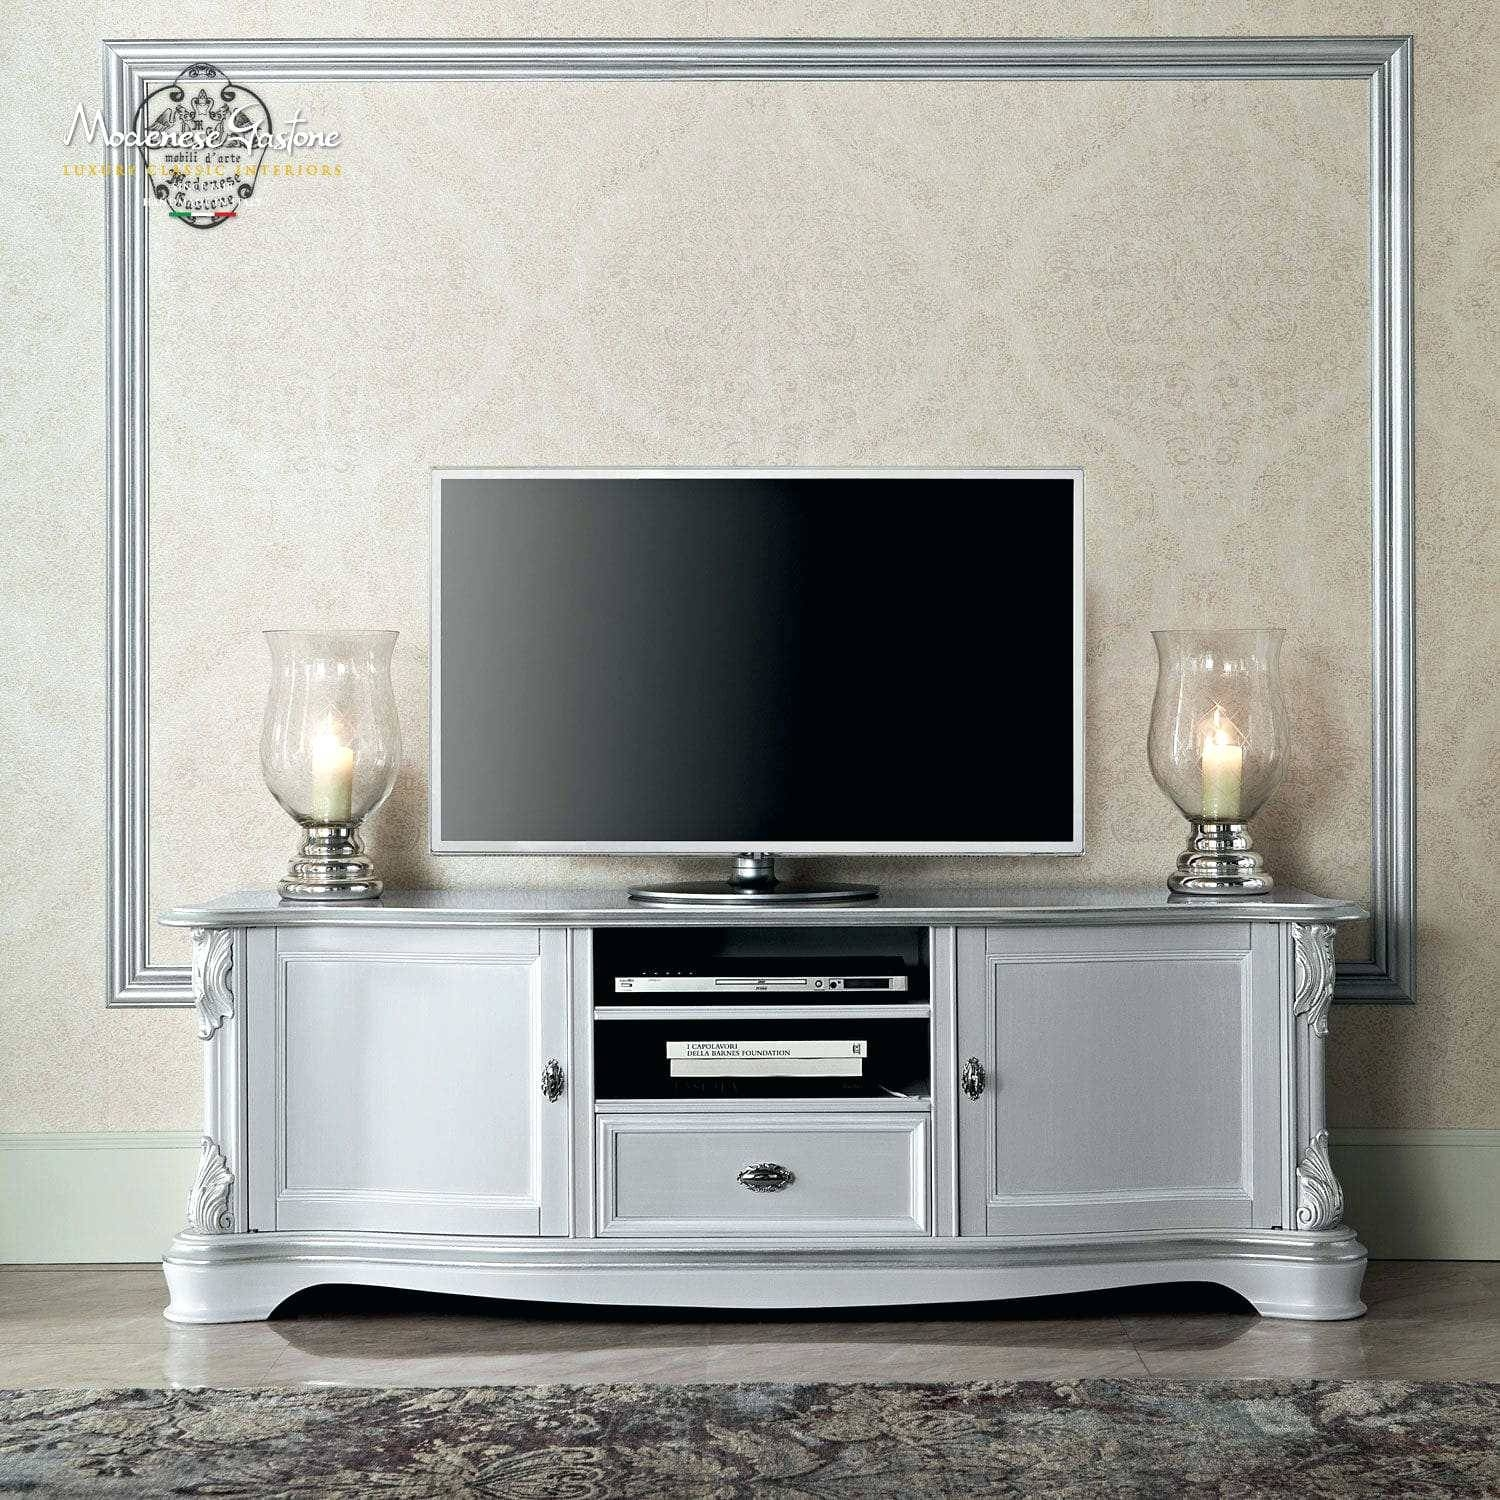 Tv Stand : Ikea Tv Stand Solid Wood 136 Norwalk 60 Inch American inside Classic Tv Stands (Image 13 of 15)